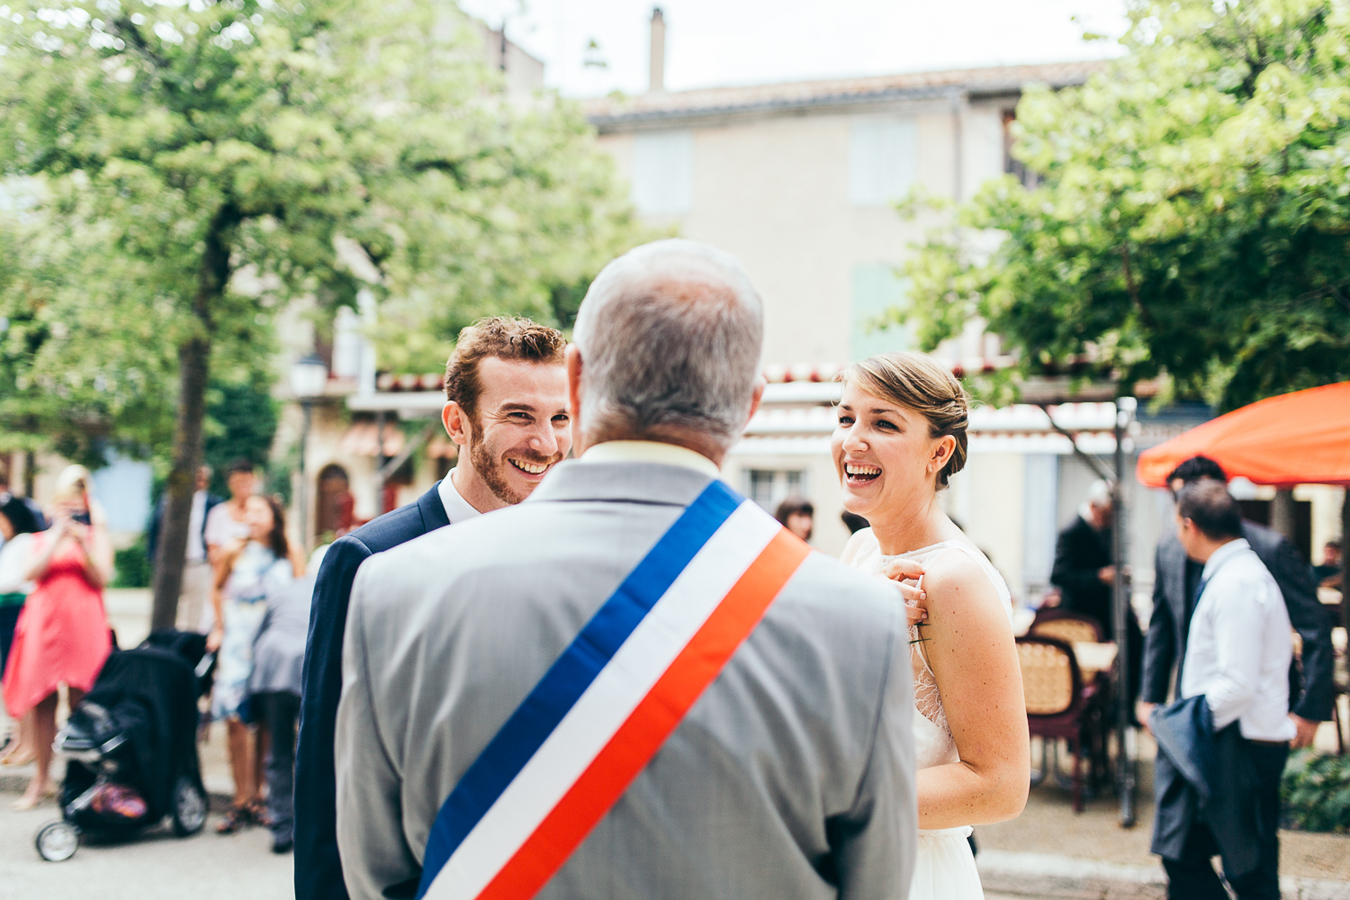 neupap_photography_wedding_banon_luberon_A+A-213.jpg